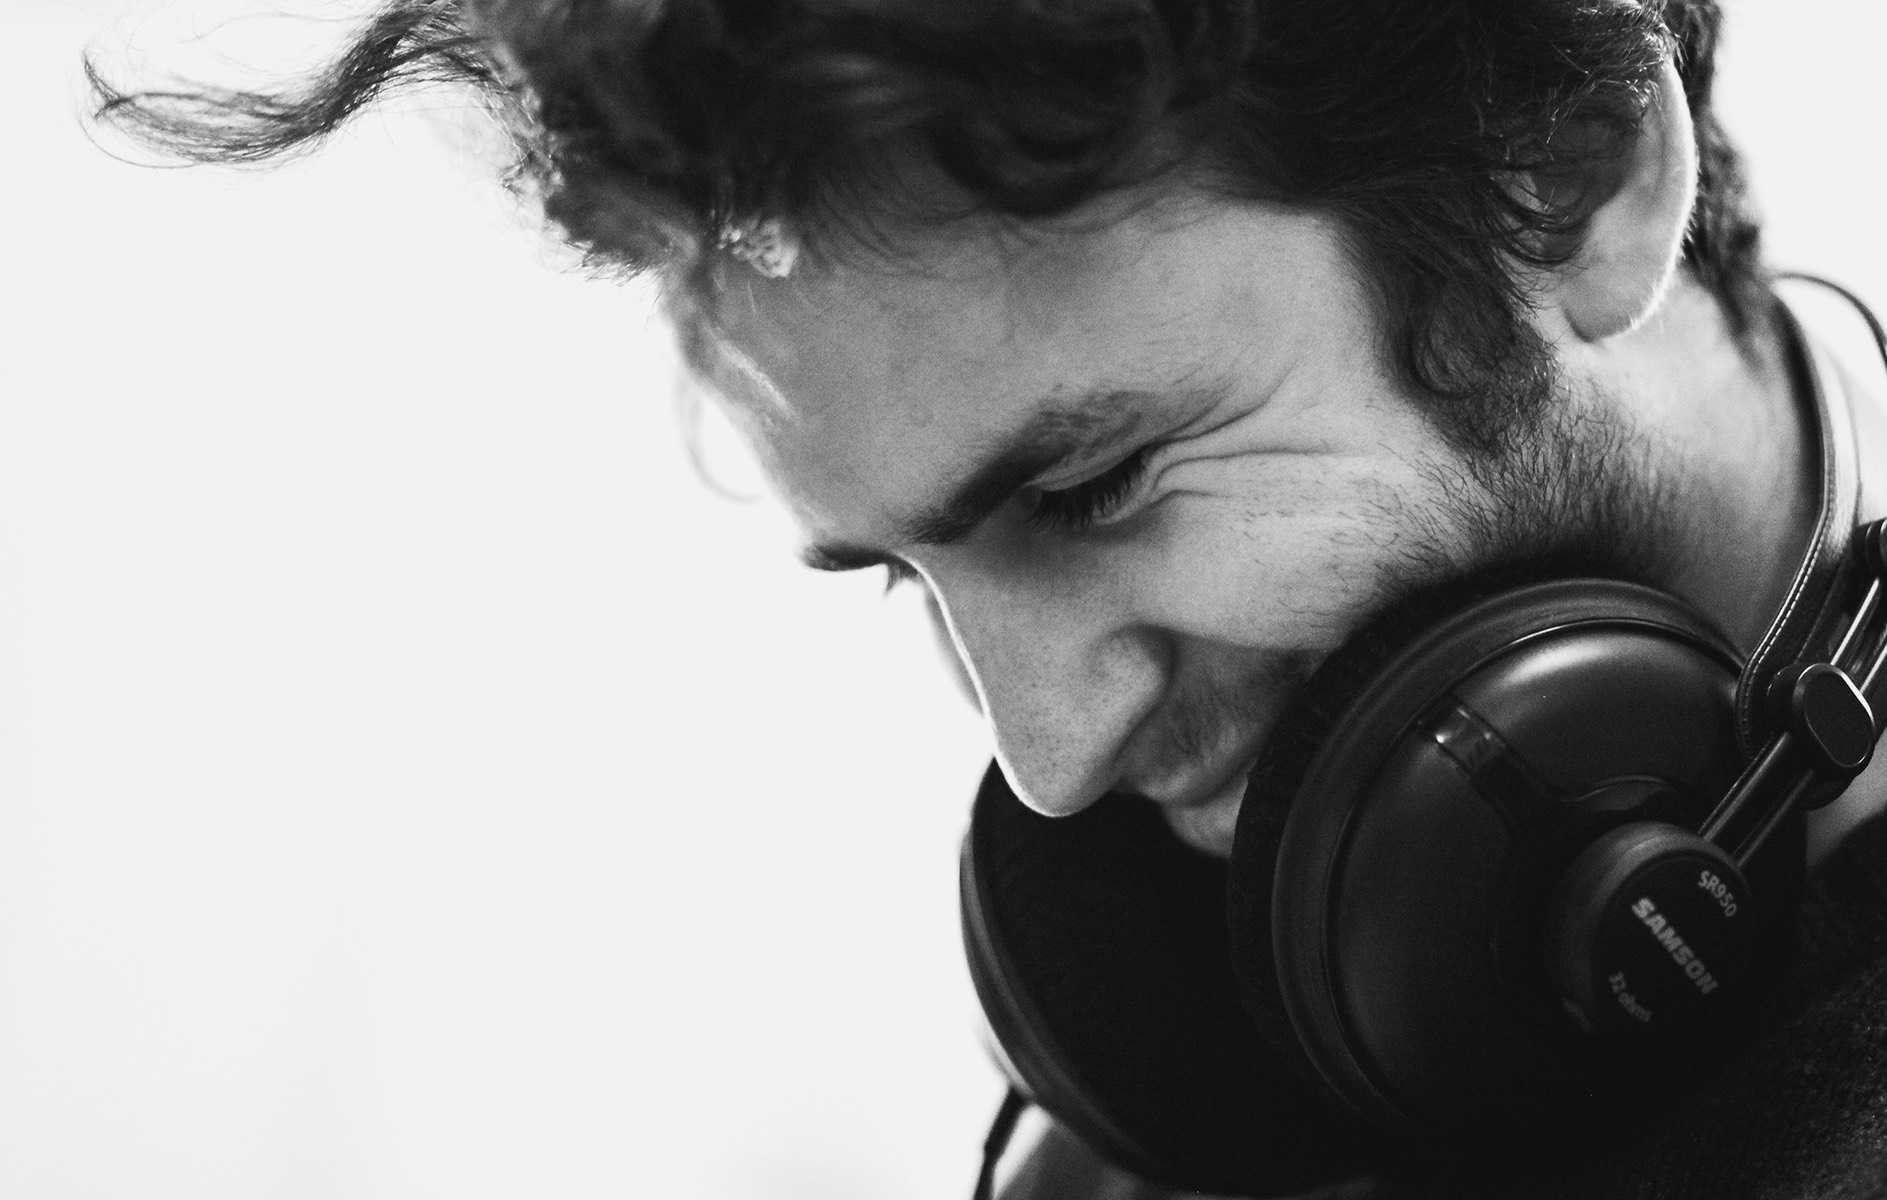 black and white image of a man wearing headphones around his neck looking down